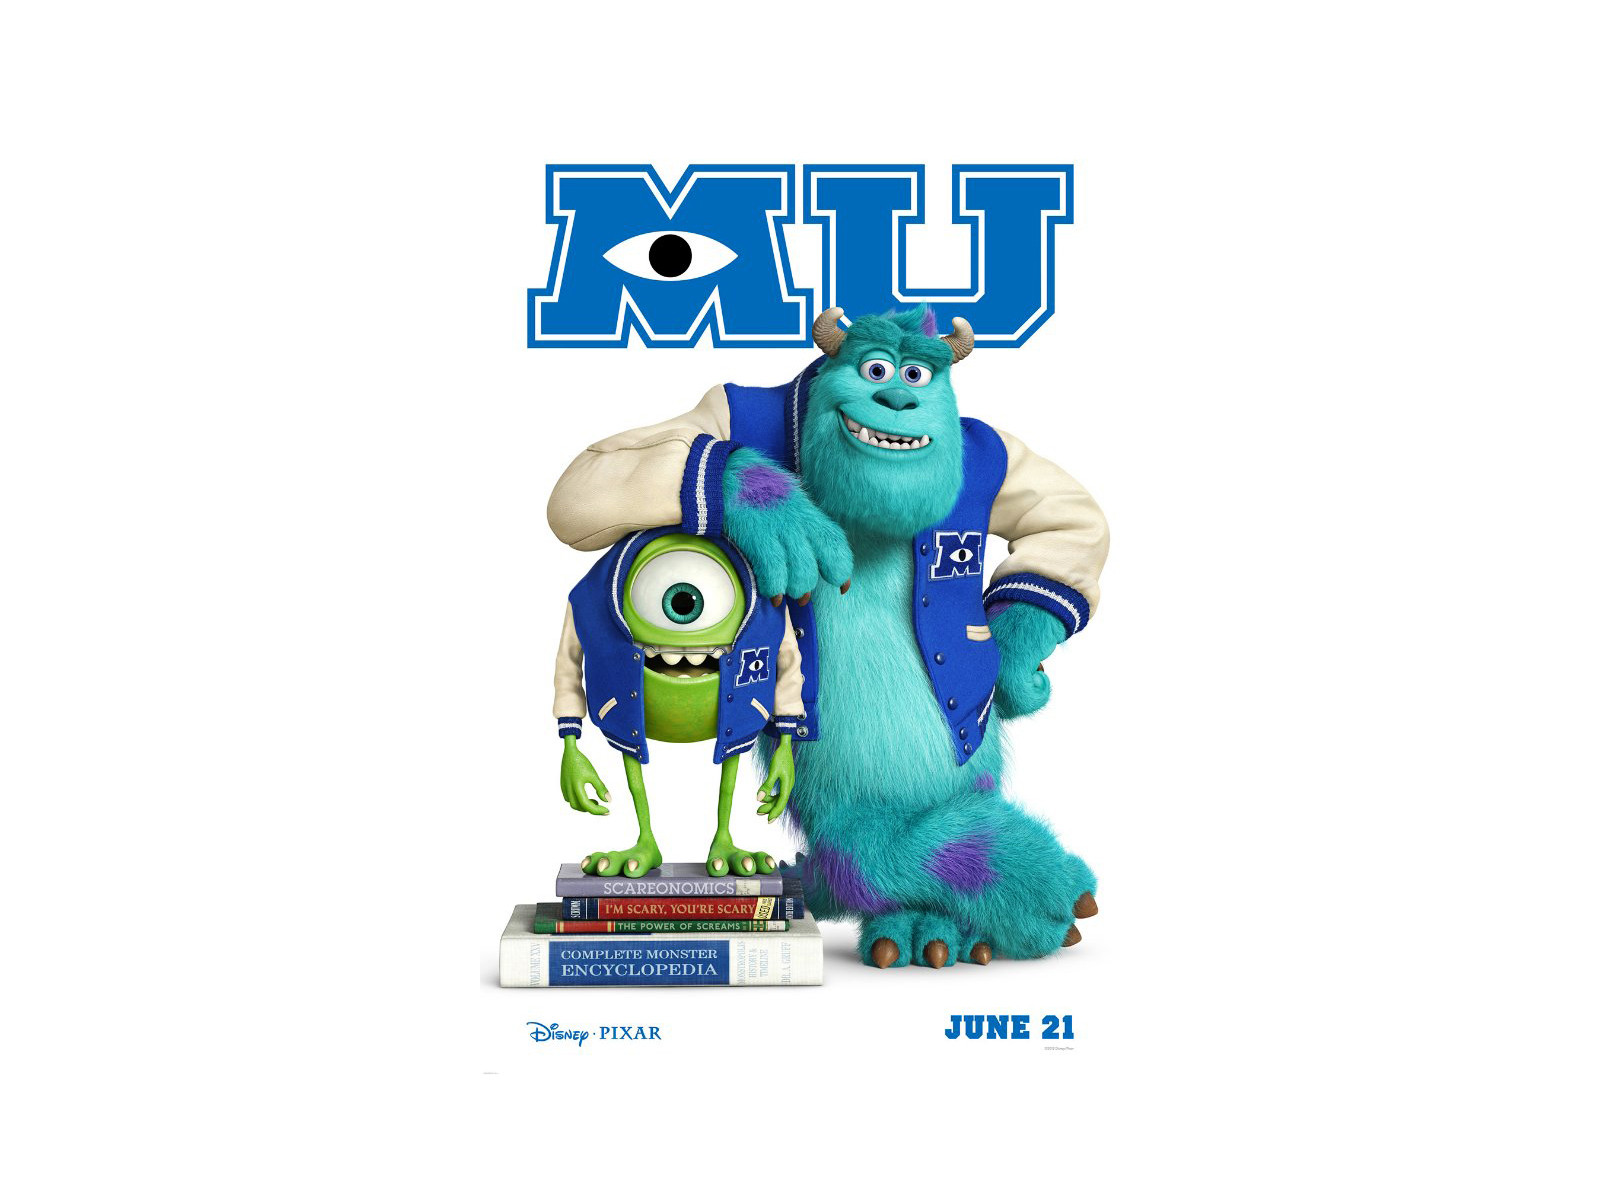 Monsters-university-main-characters-hd-wallpapervvallpaper.net